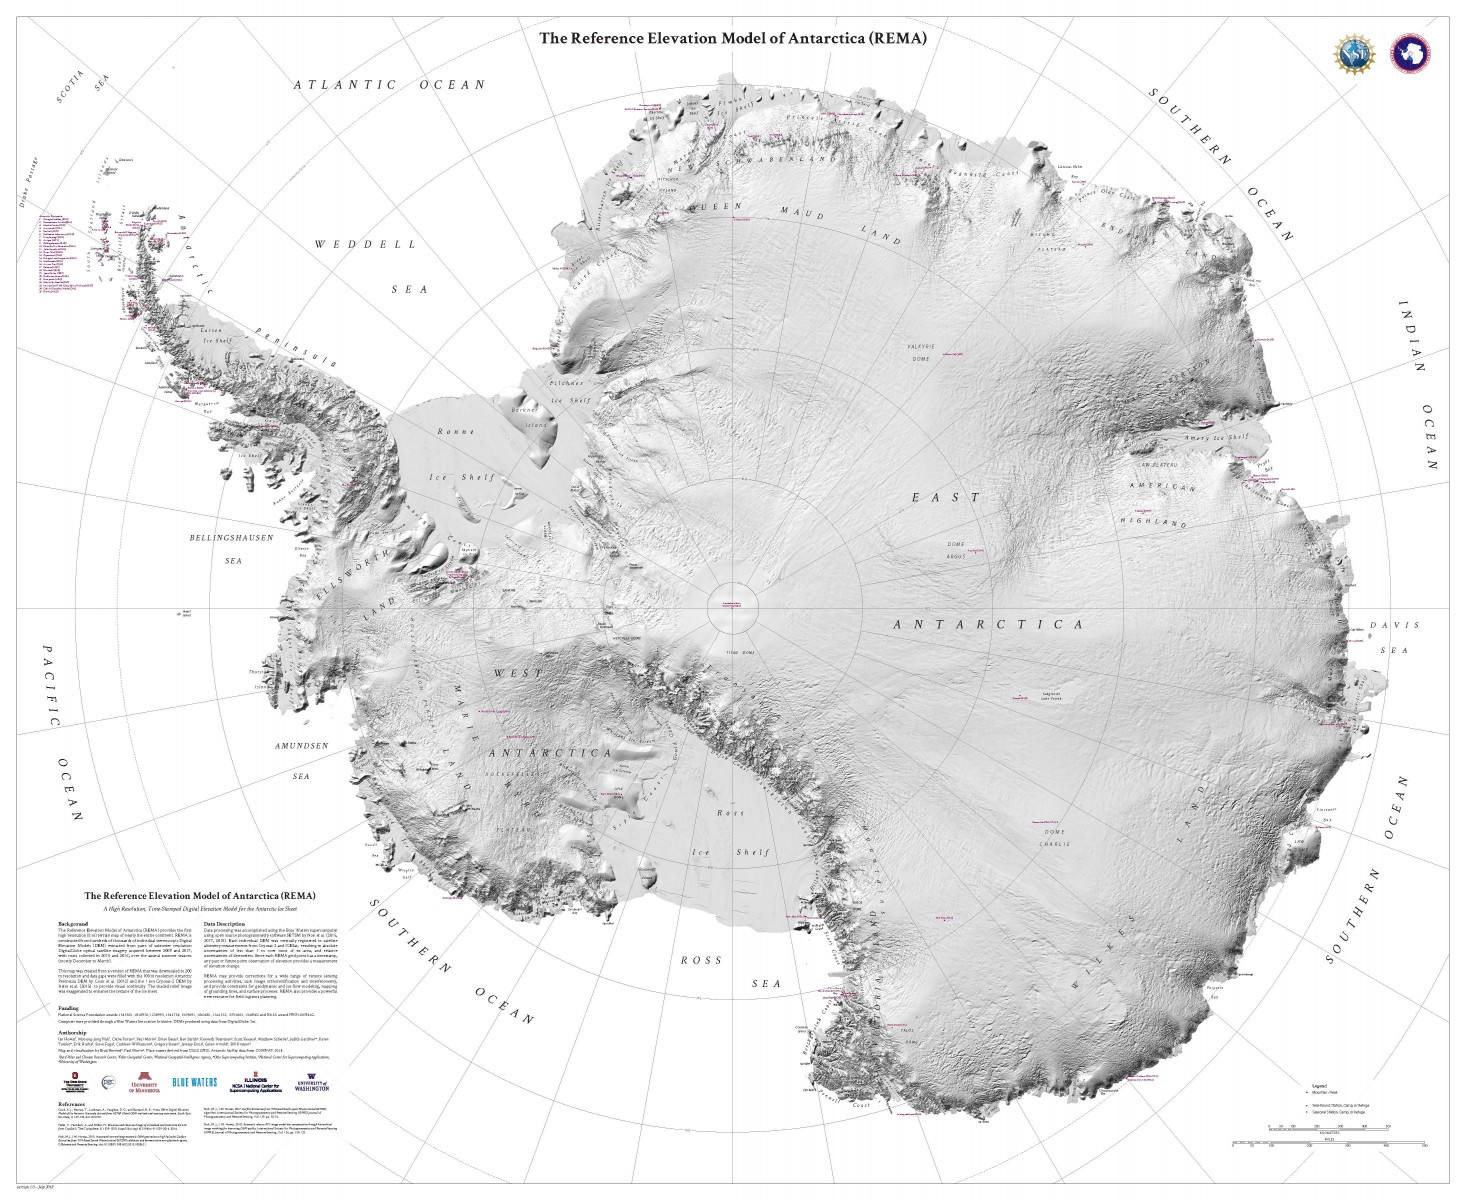 A terrain map that shows Antarctica in stunning detail